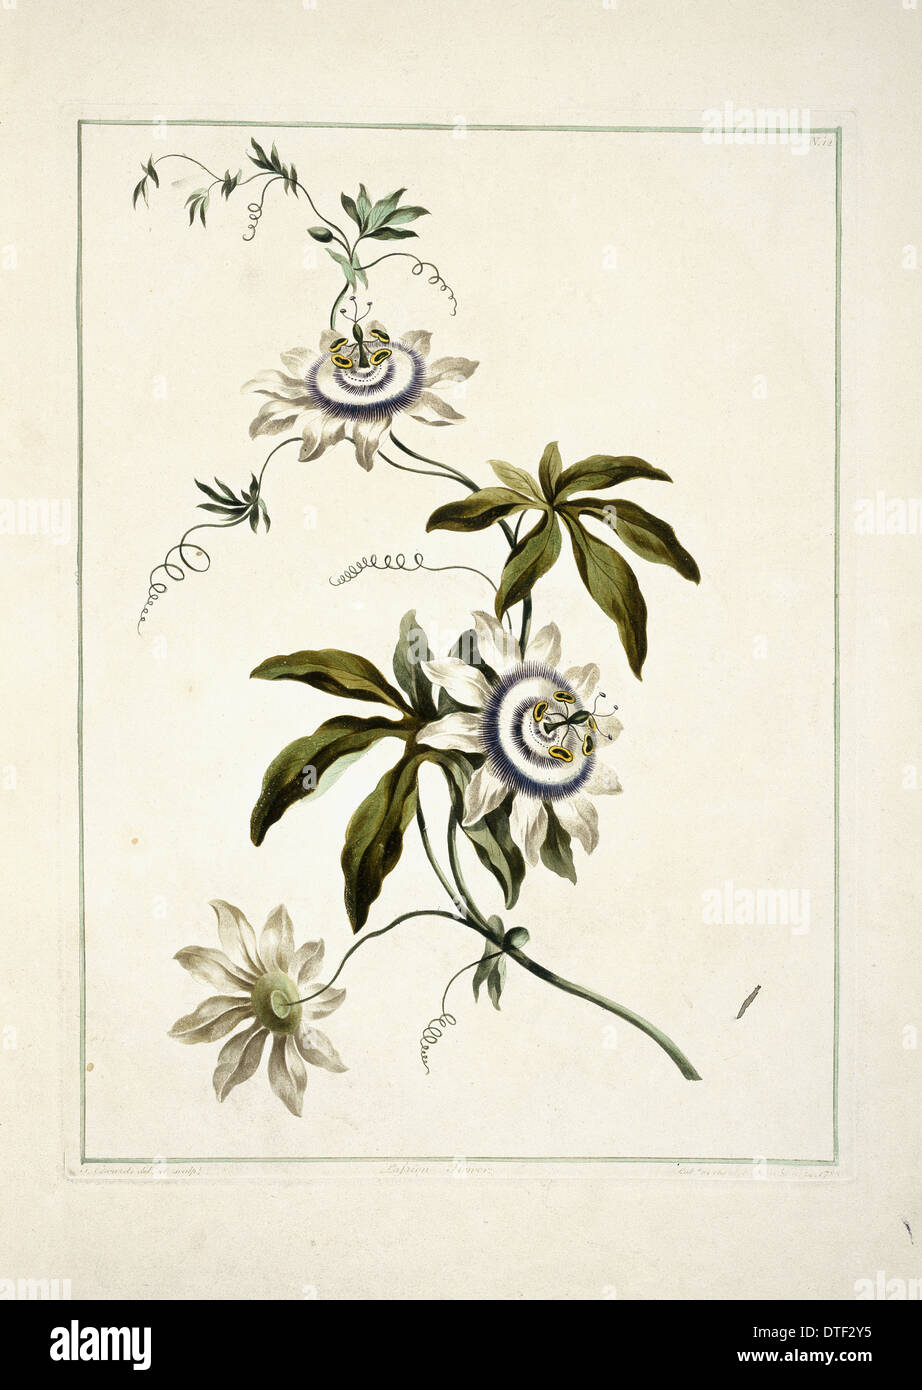 Folio 11 from A Collection of Flowers by John Edwards - Stock Image